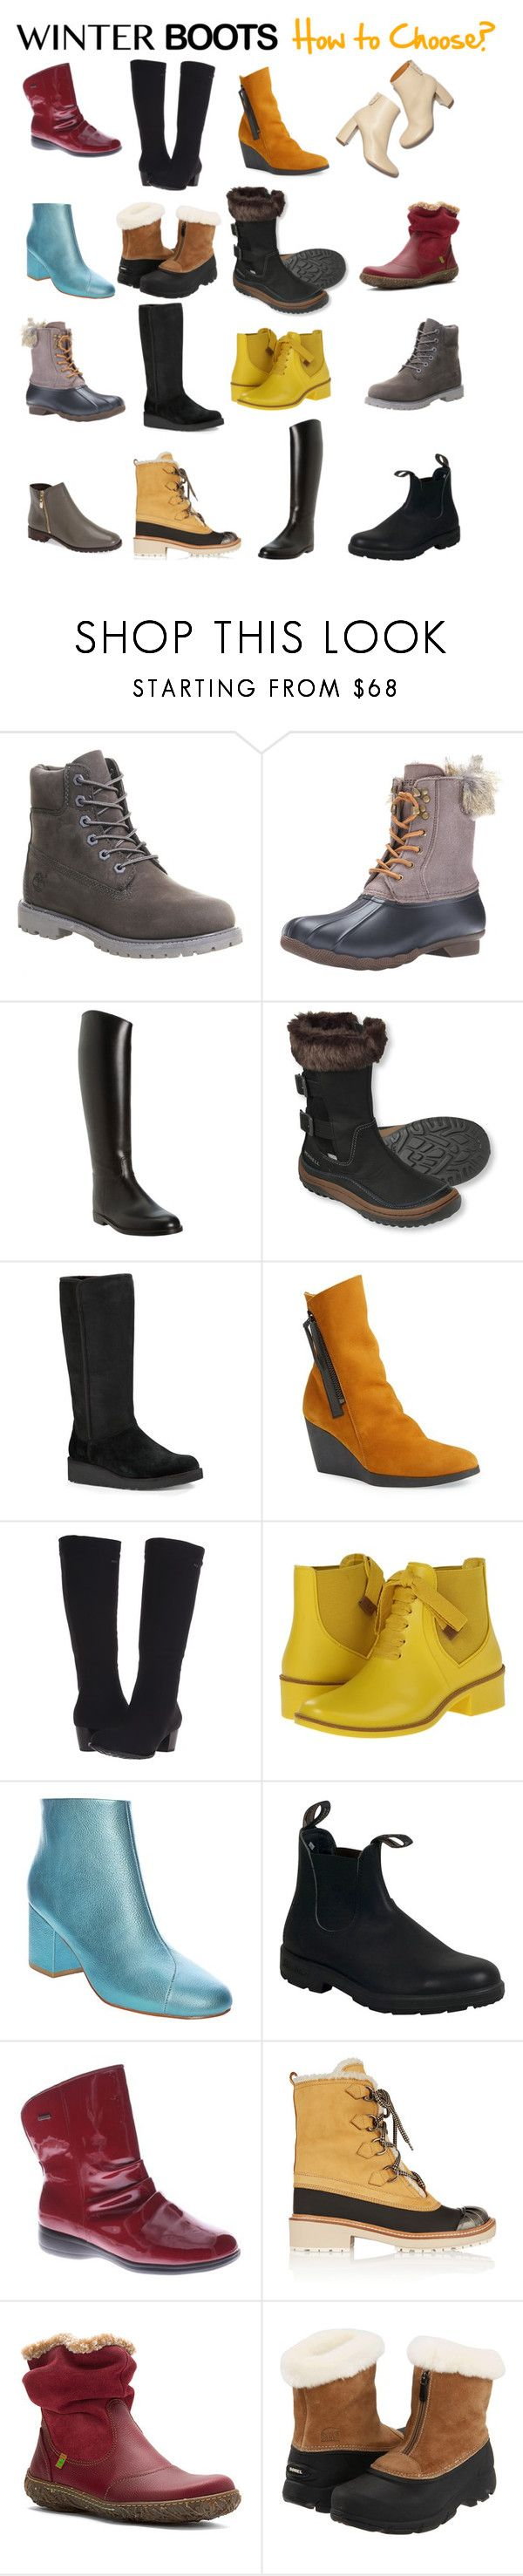 """""""Winter Boots - How to Choose?"""" by taci42 ❤ liked on Polyvore featuring STELLA McCARTNEY, Timberland, Sperry Top-Sider, Aigle, Merrell, UGG Australia, Arche, ara, Bernardo and Blundstone"""